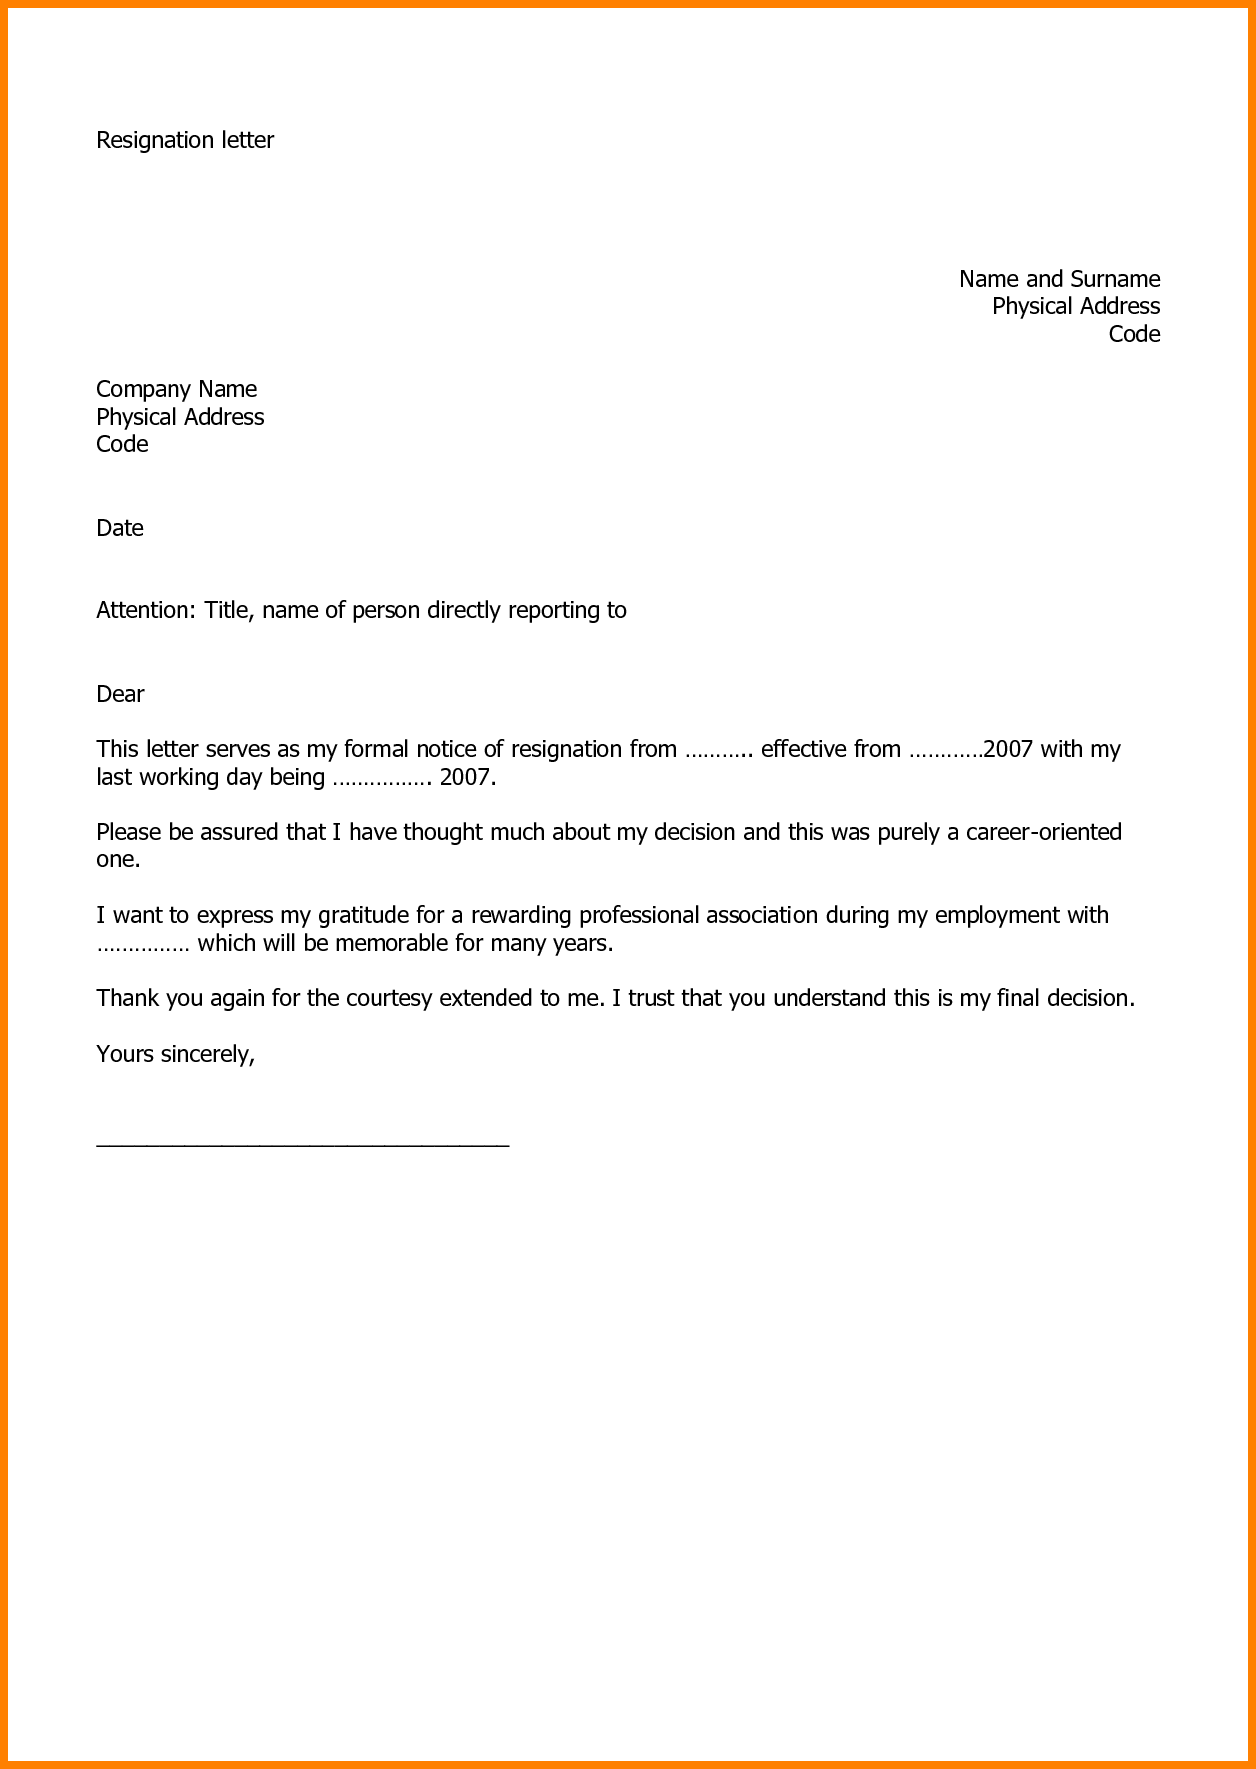 example resignation letter two weeks notice 11 40 two weeks sample thank you letter after interview fax cover sheet